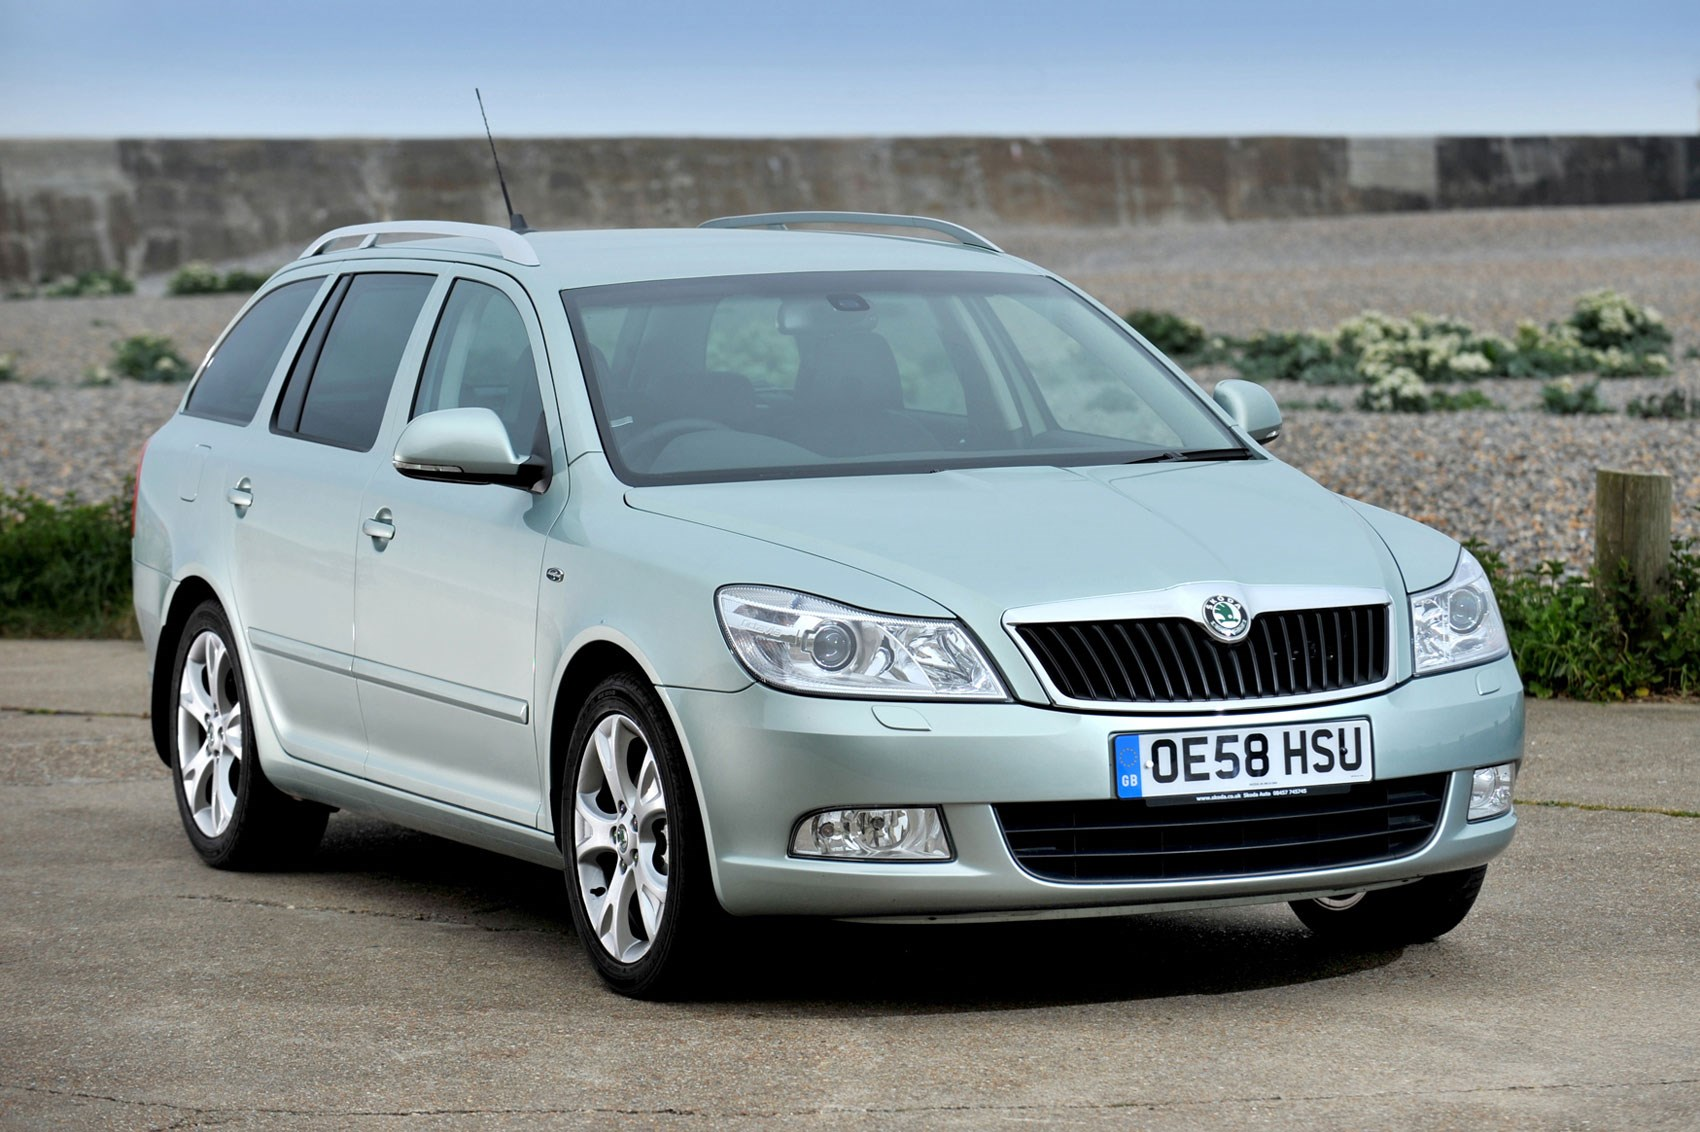 Best Used Commuter Car Under